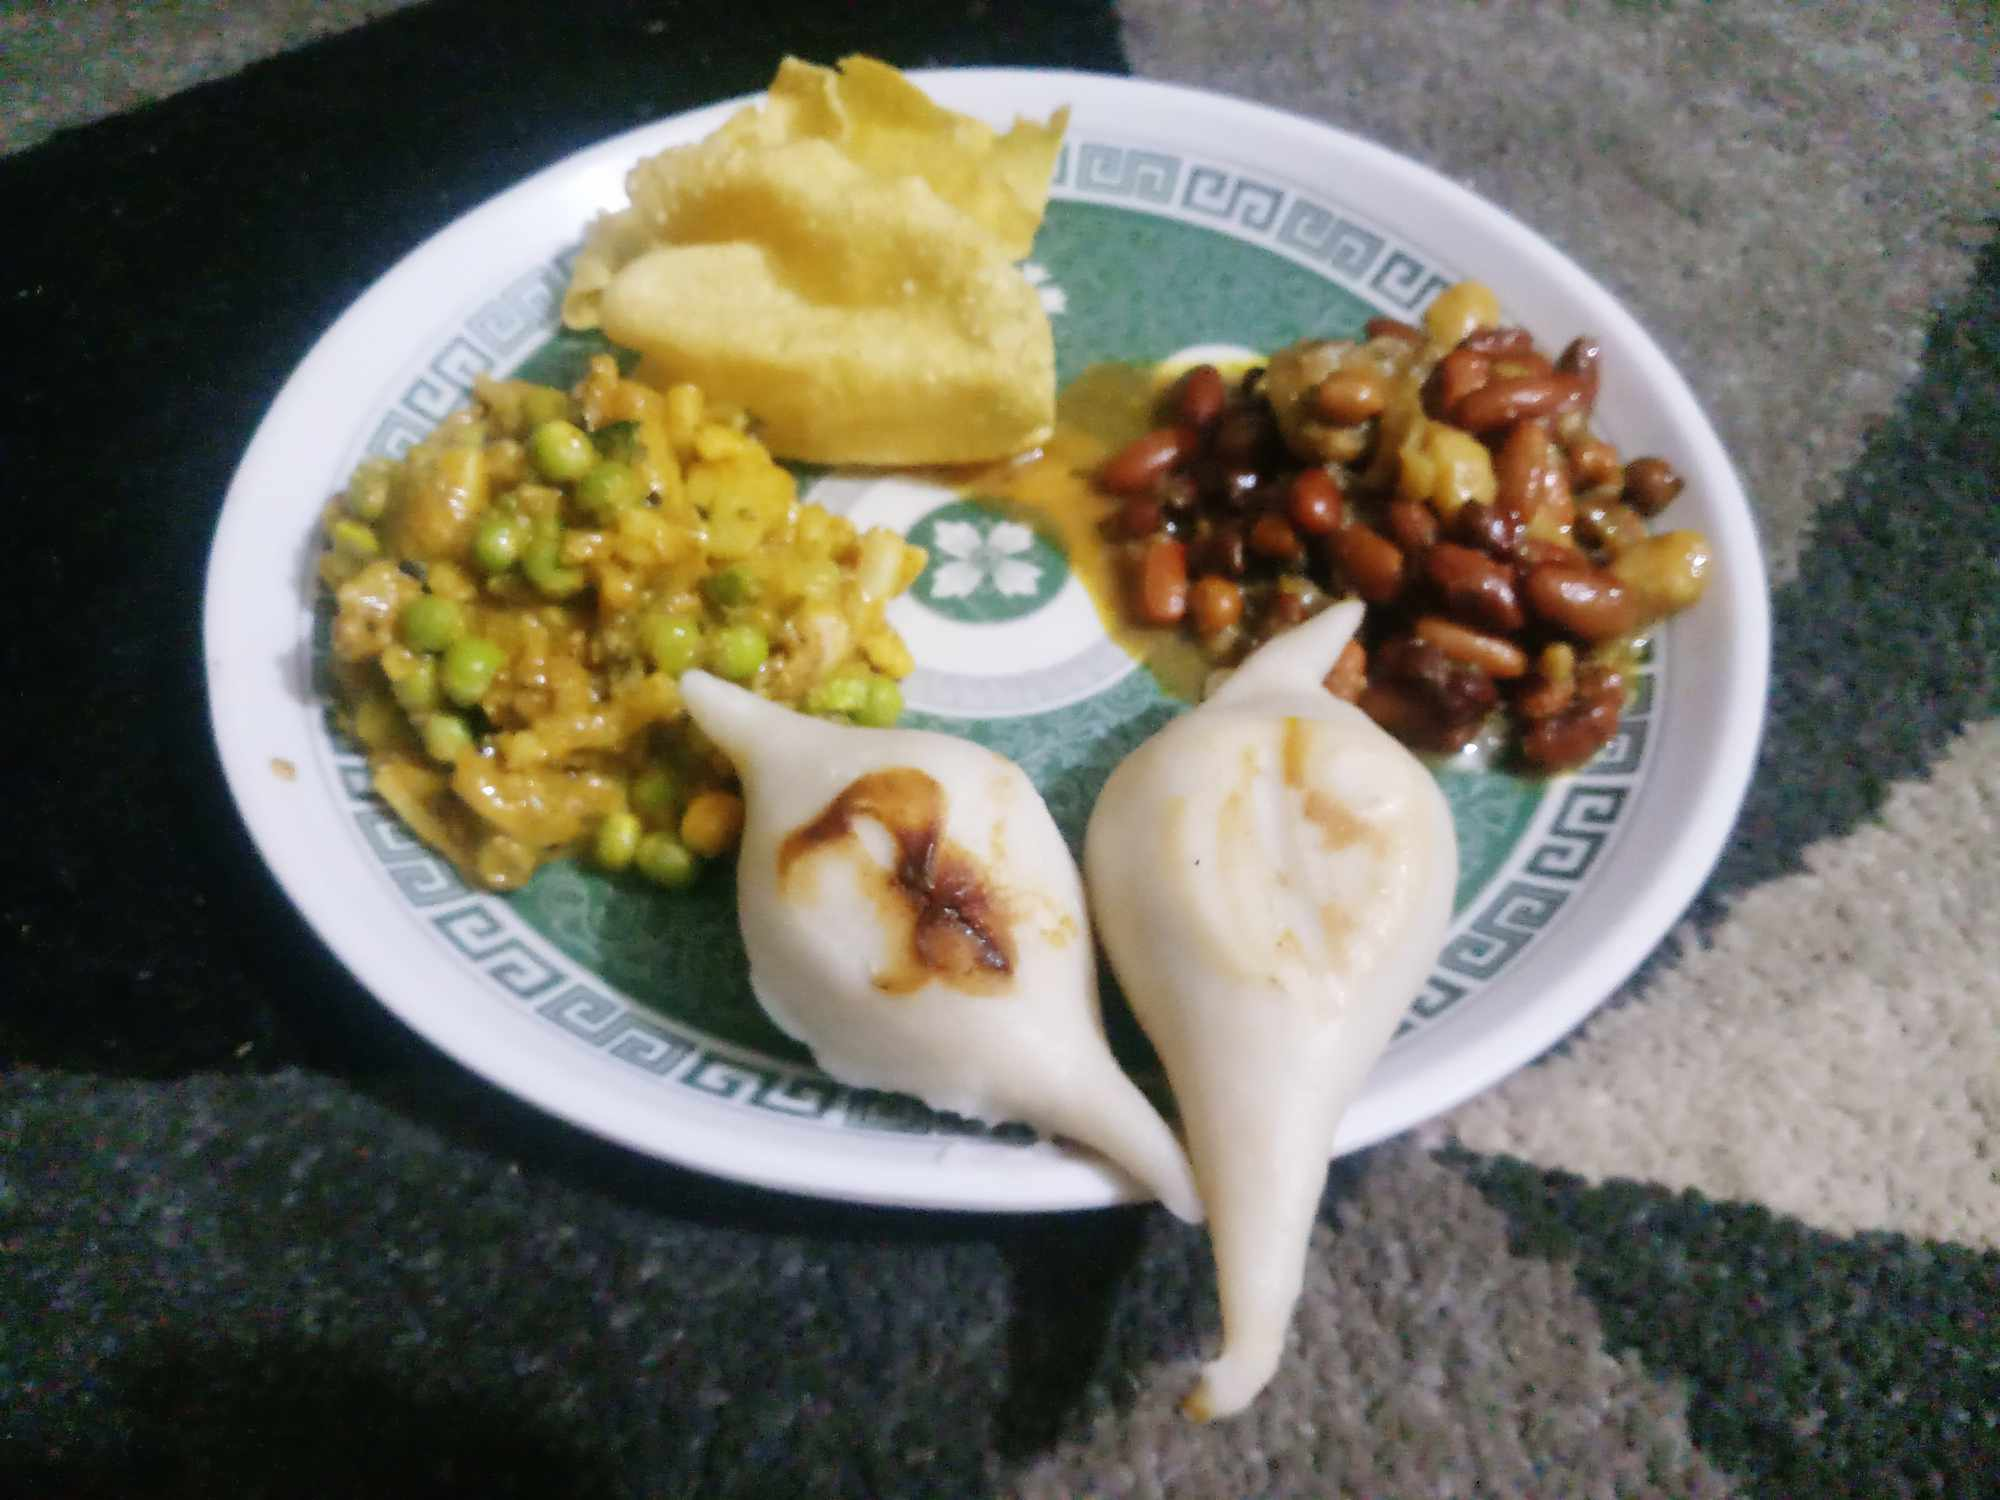 plate of various curries made with beans and peas and two white dumplings